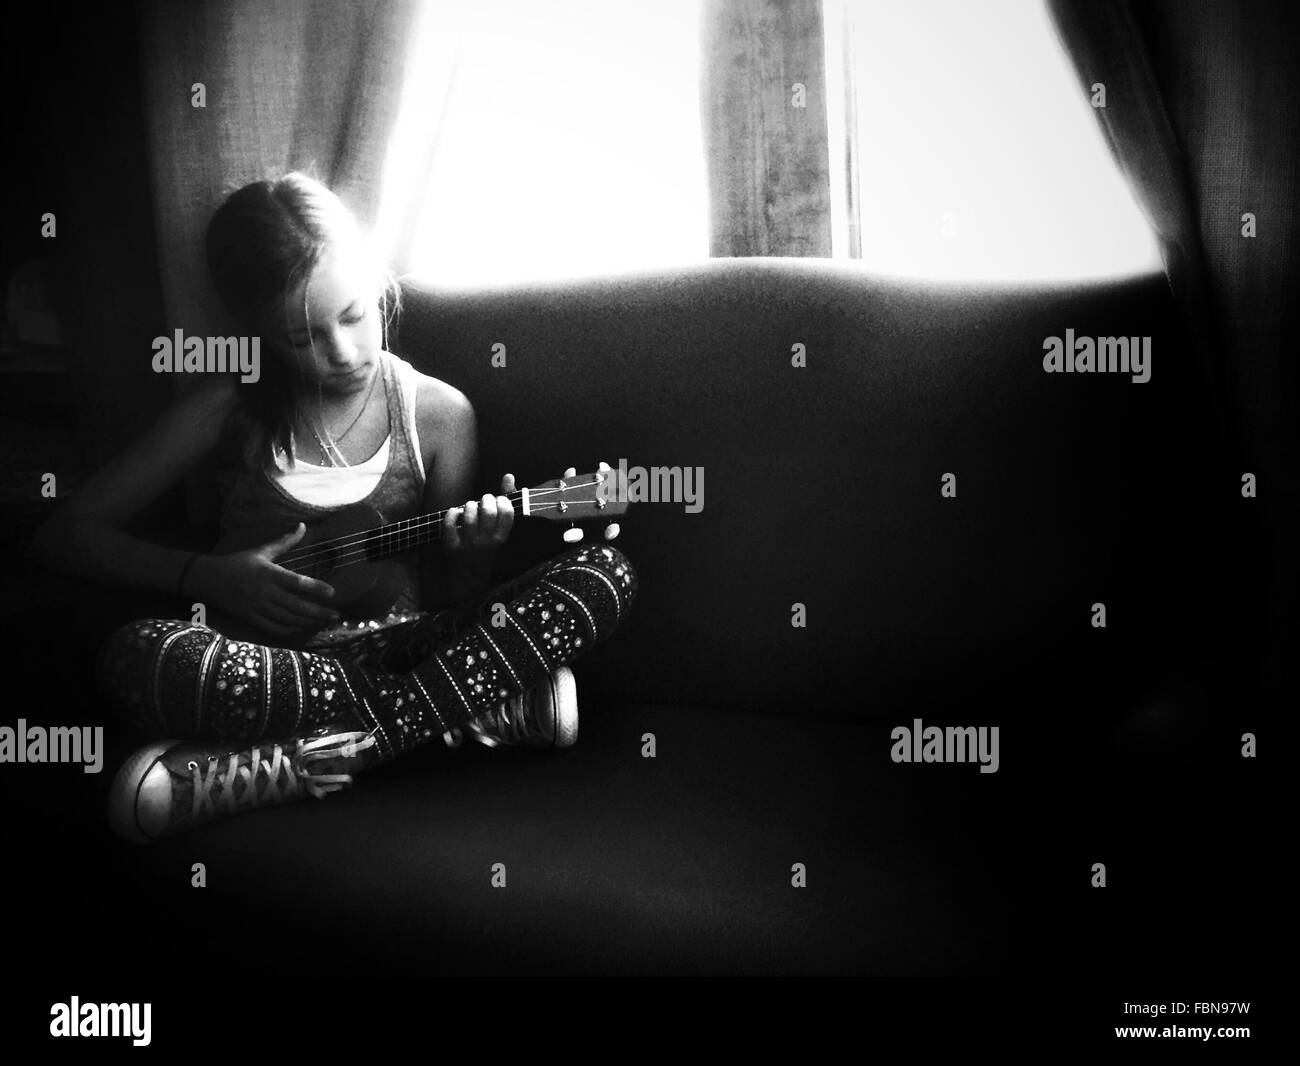 Girl Playing Ukulele In House - Stock Image